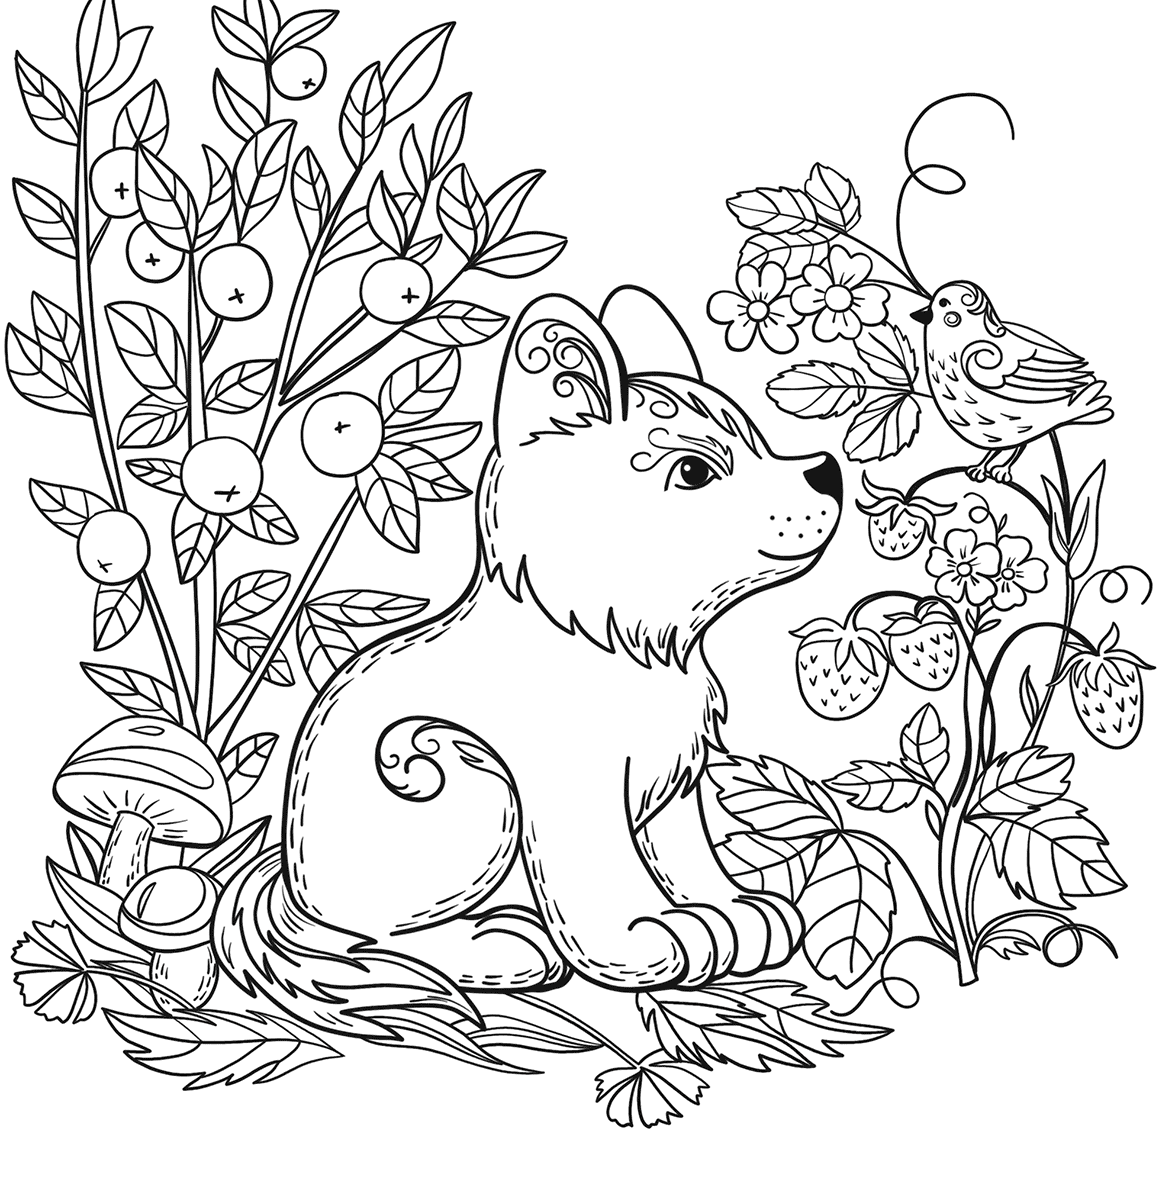 printable forest pictures forest coloring pages download and print forest coloring forest printable pictures